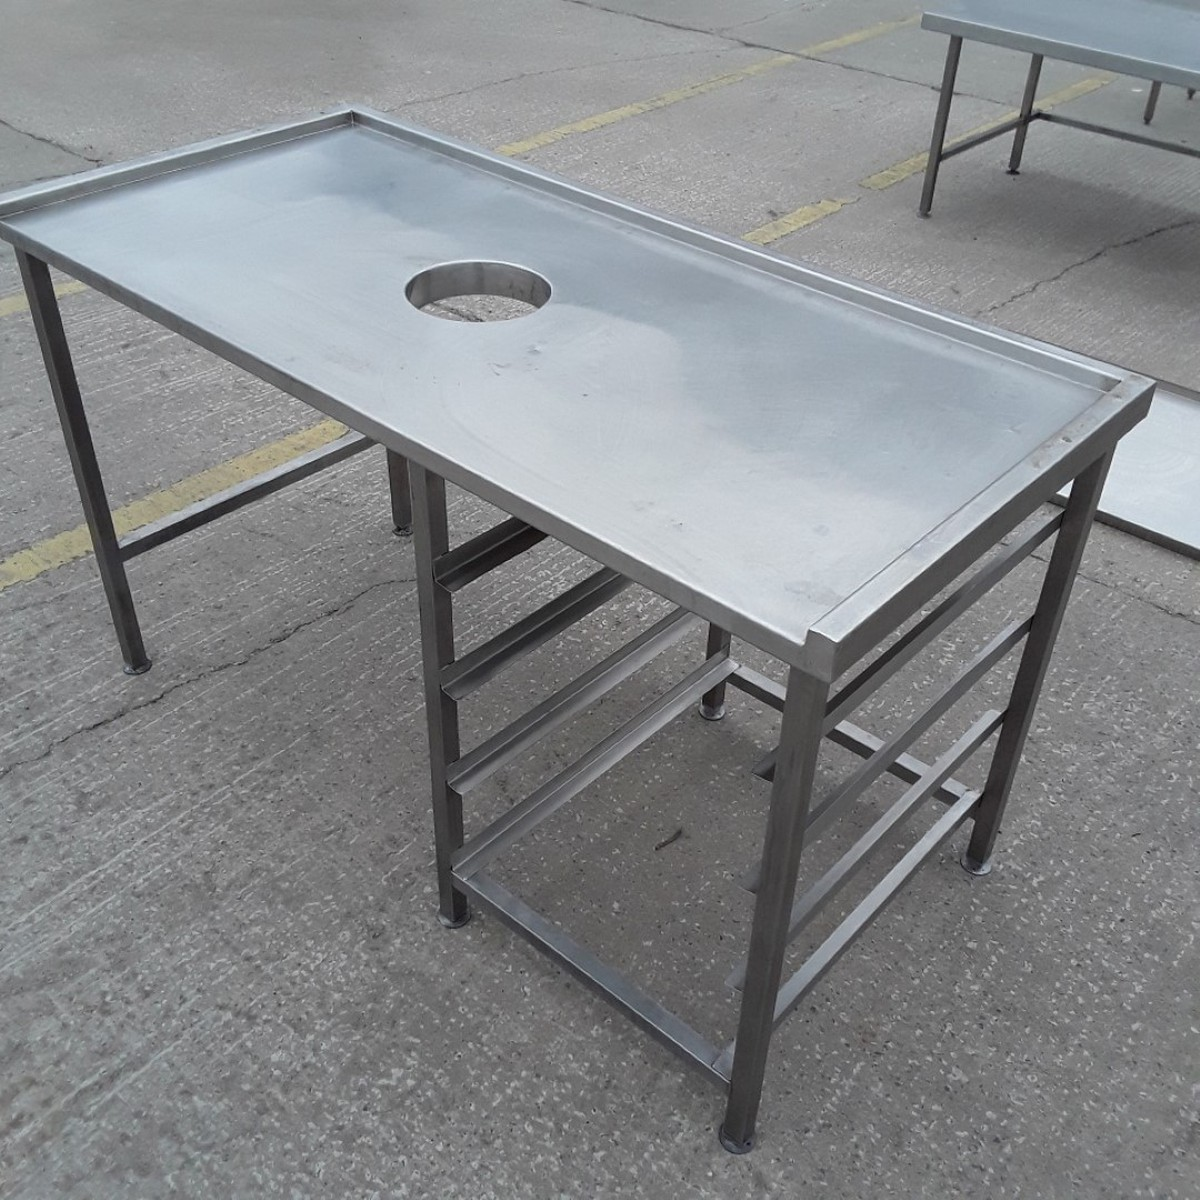 Used Stainless Steel Tables >> Secondhand Catering Equipment Stainless Steel Tables 1 01m To 2m